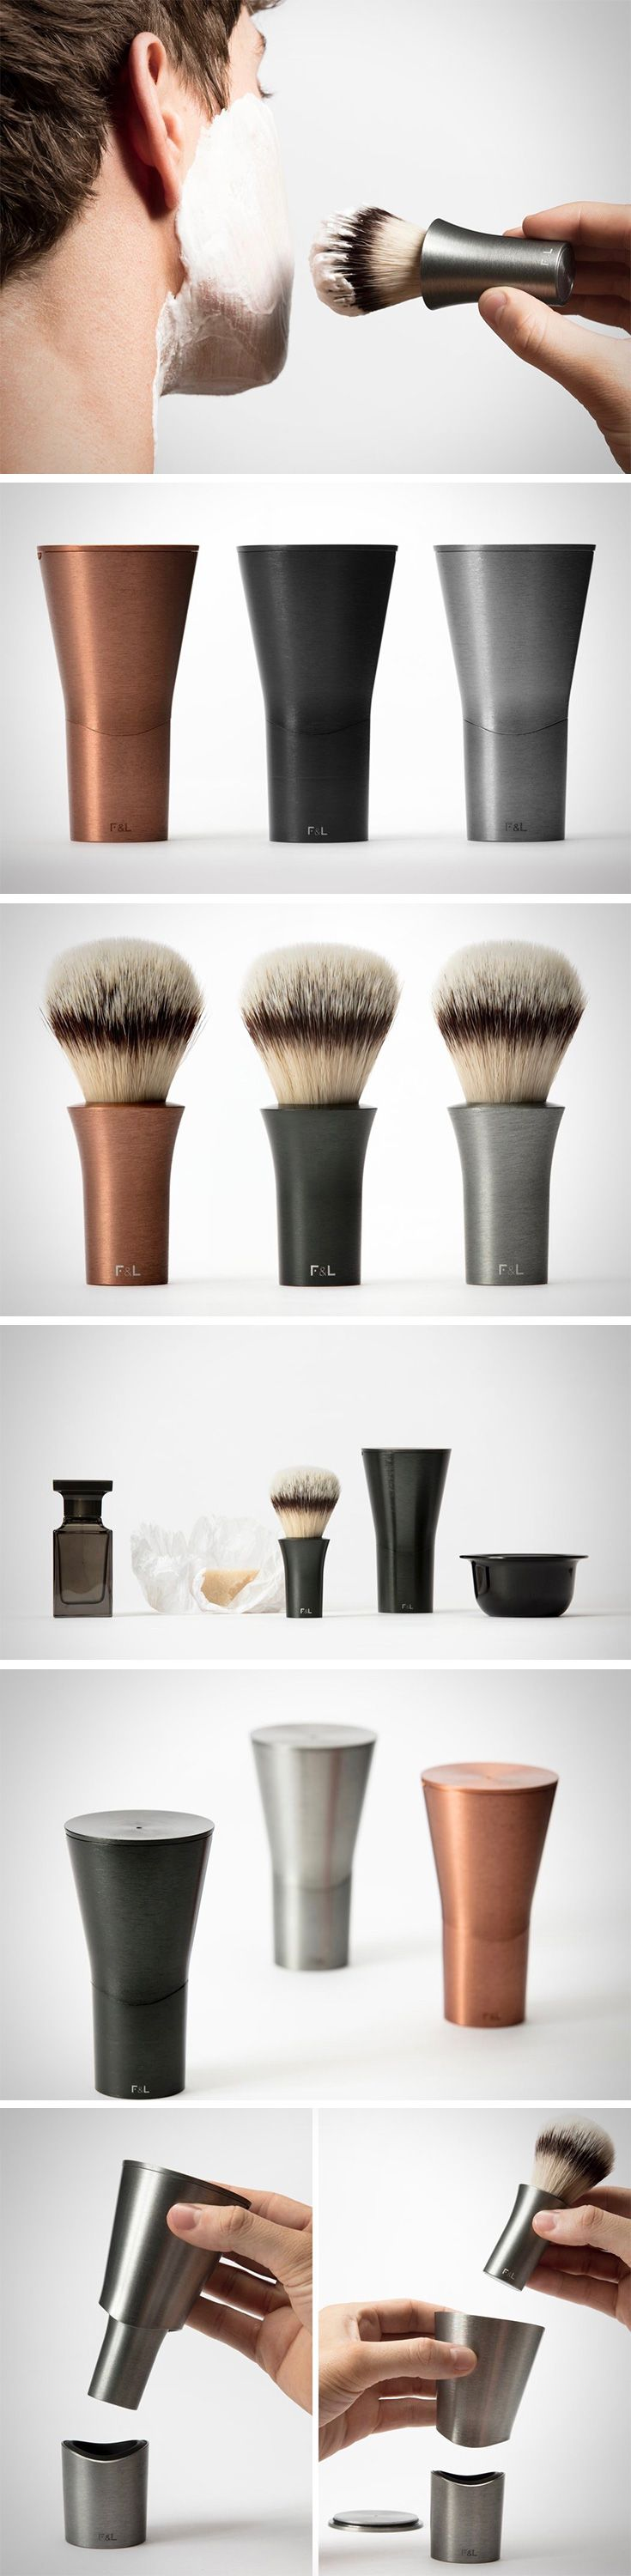 Bring home a barber shop quality shave with OFFSET – the latest from Layer for London startup Follicle&Limb. This sleek, modern set consists of three parts: a badger shaving brush, case which doubles as a stand for the drying bush and a dish for the razor. Forget the myriad of male grooming accessories… this minimalistic, magnetically married combination is all you need for a handsome, smooth face!